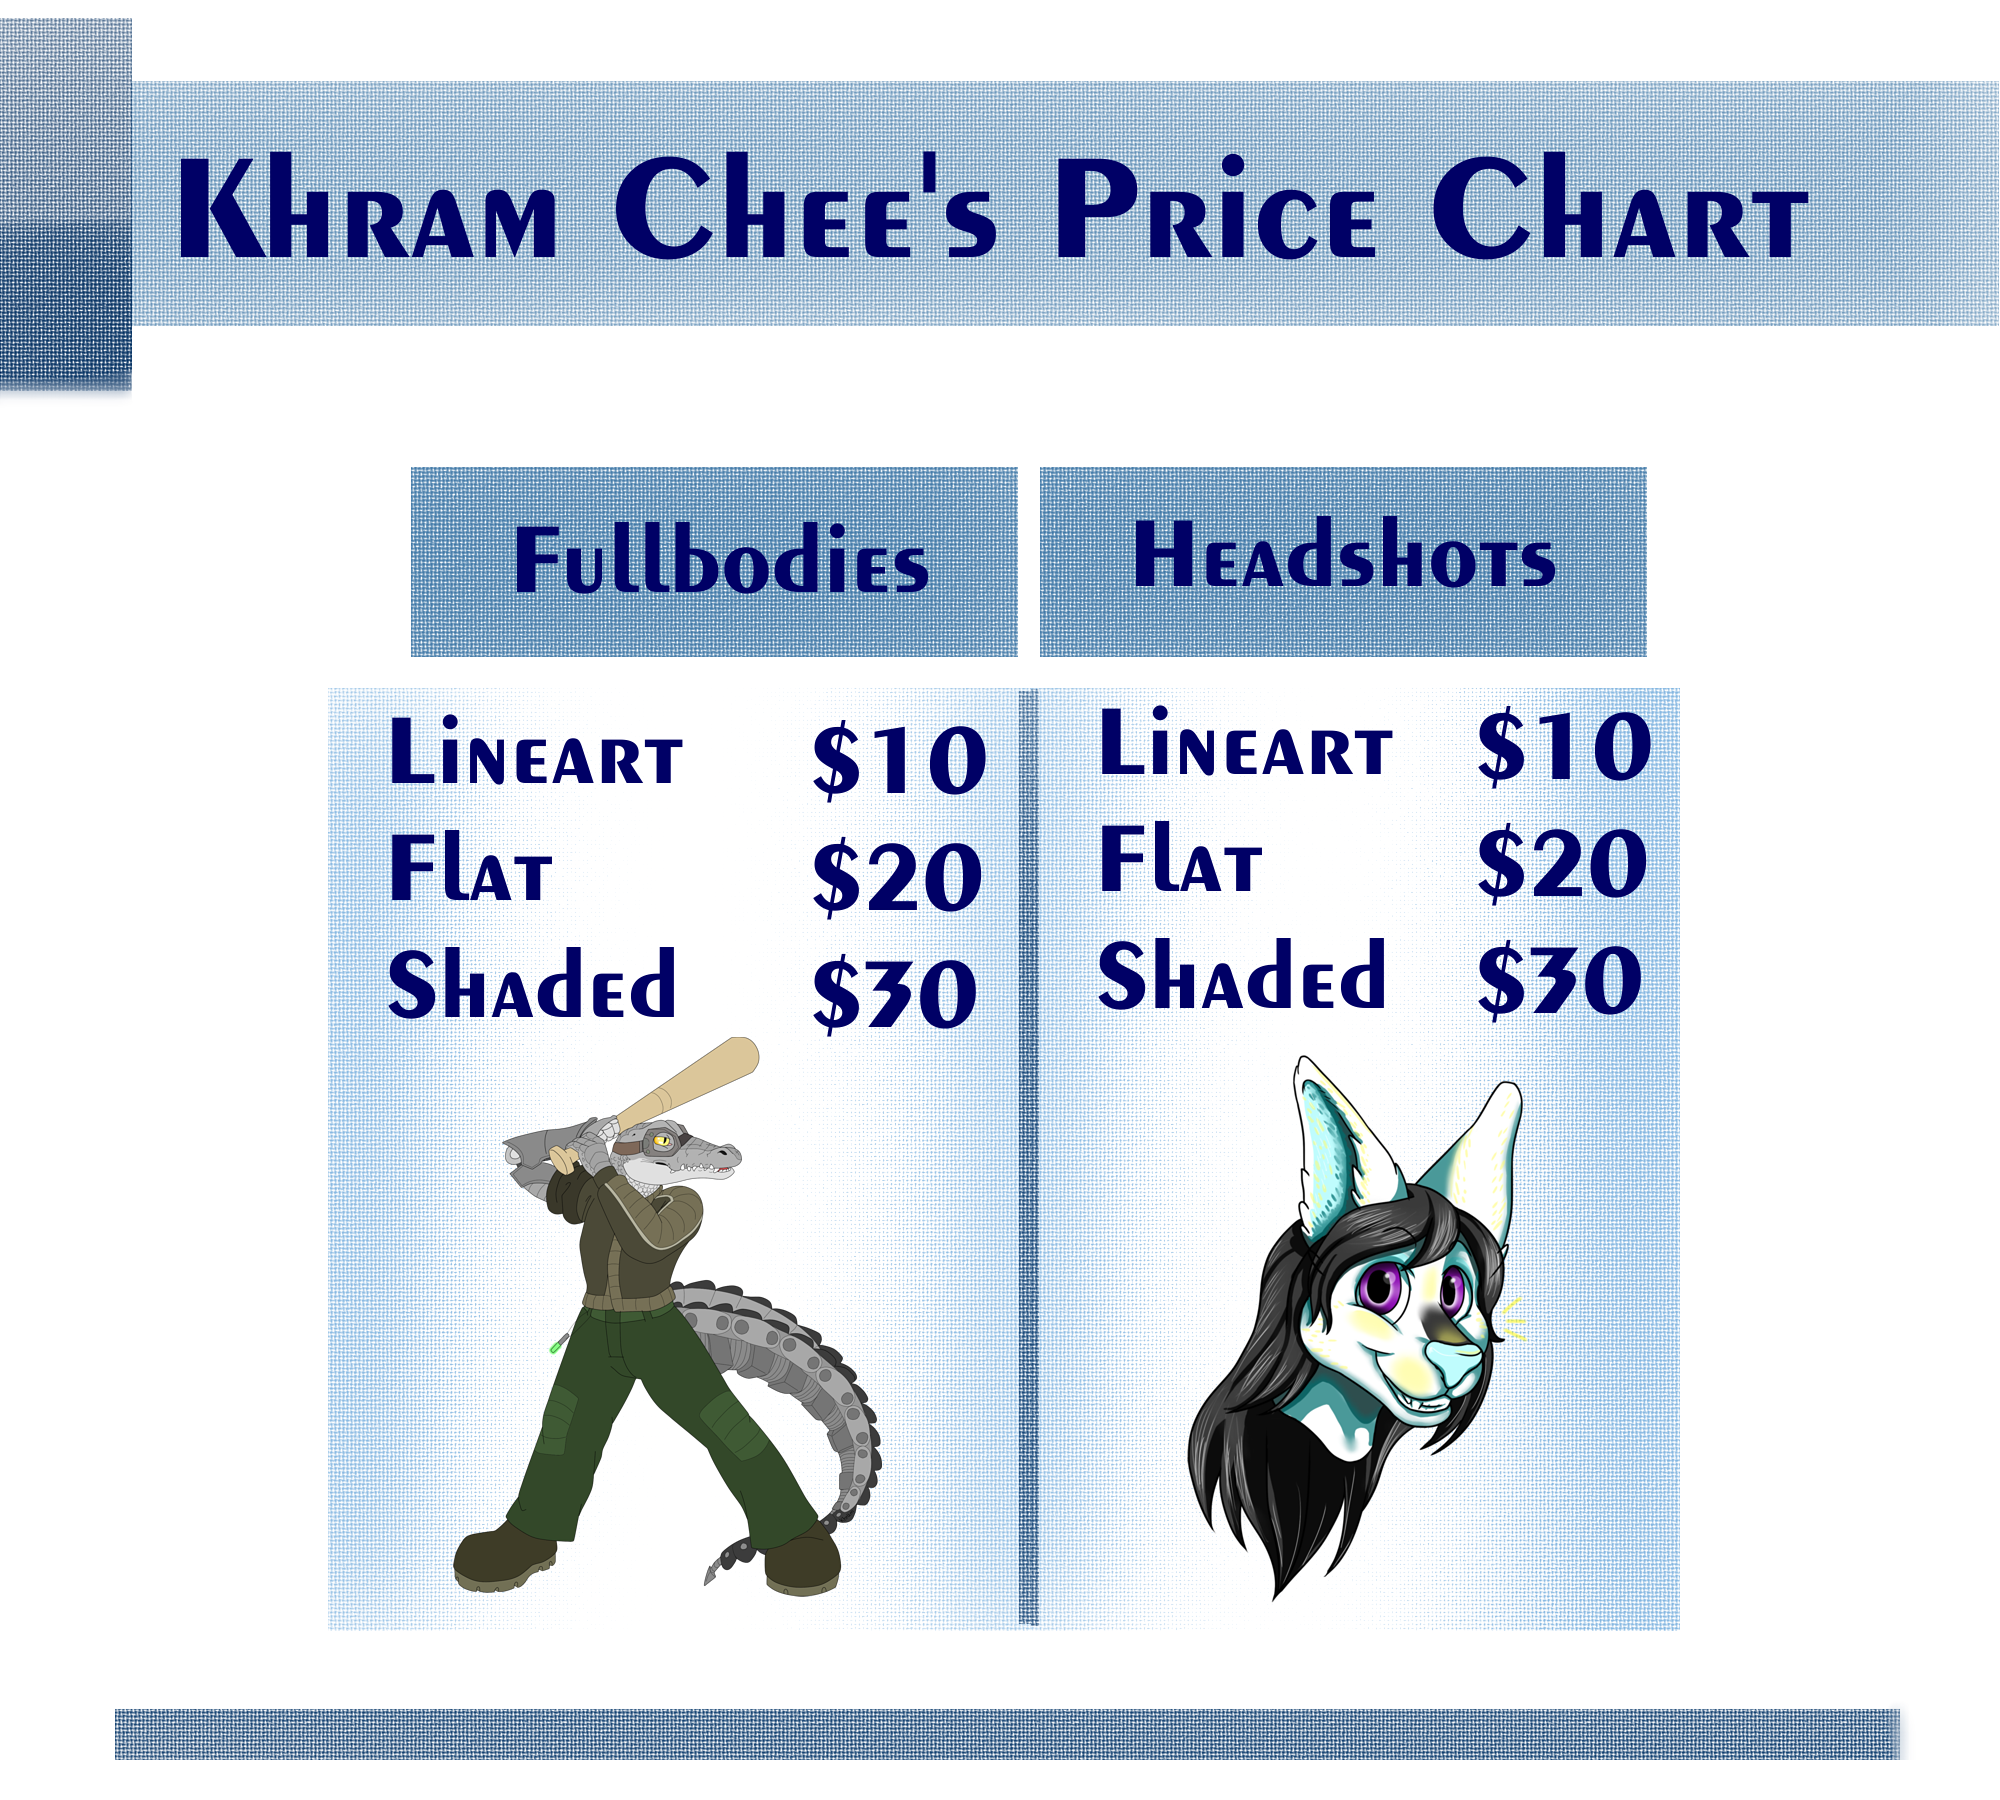 my_price_chart2_by_khramchee-dat1z26.png